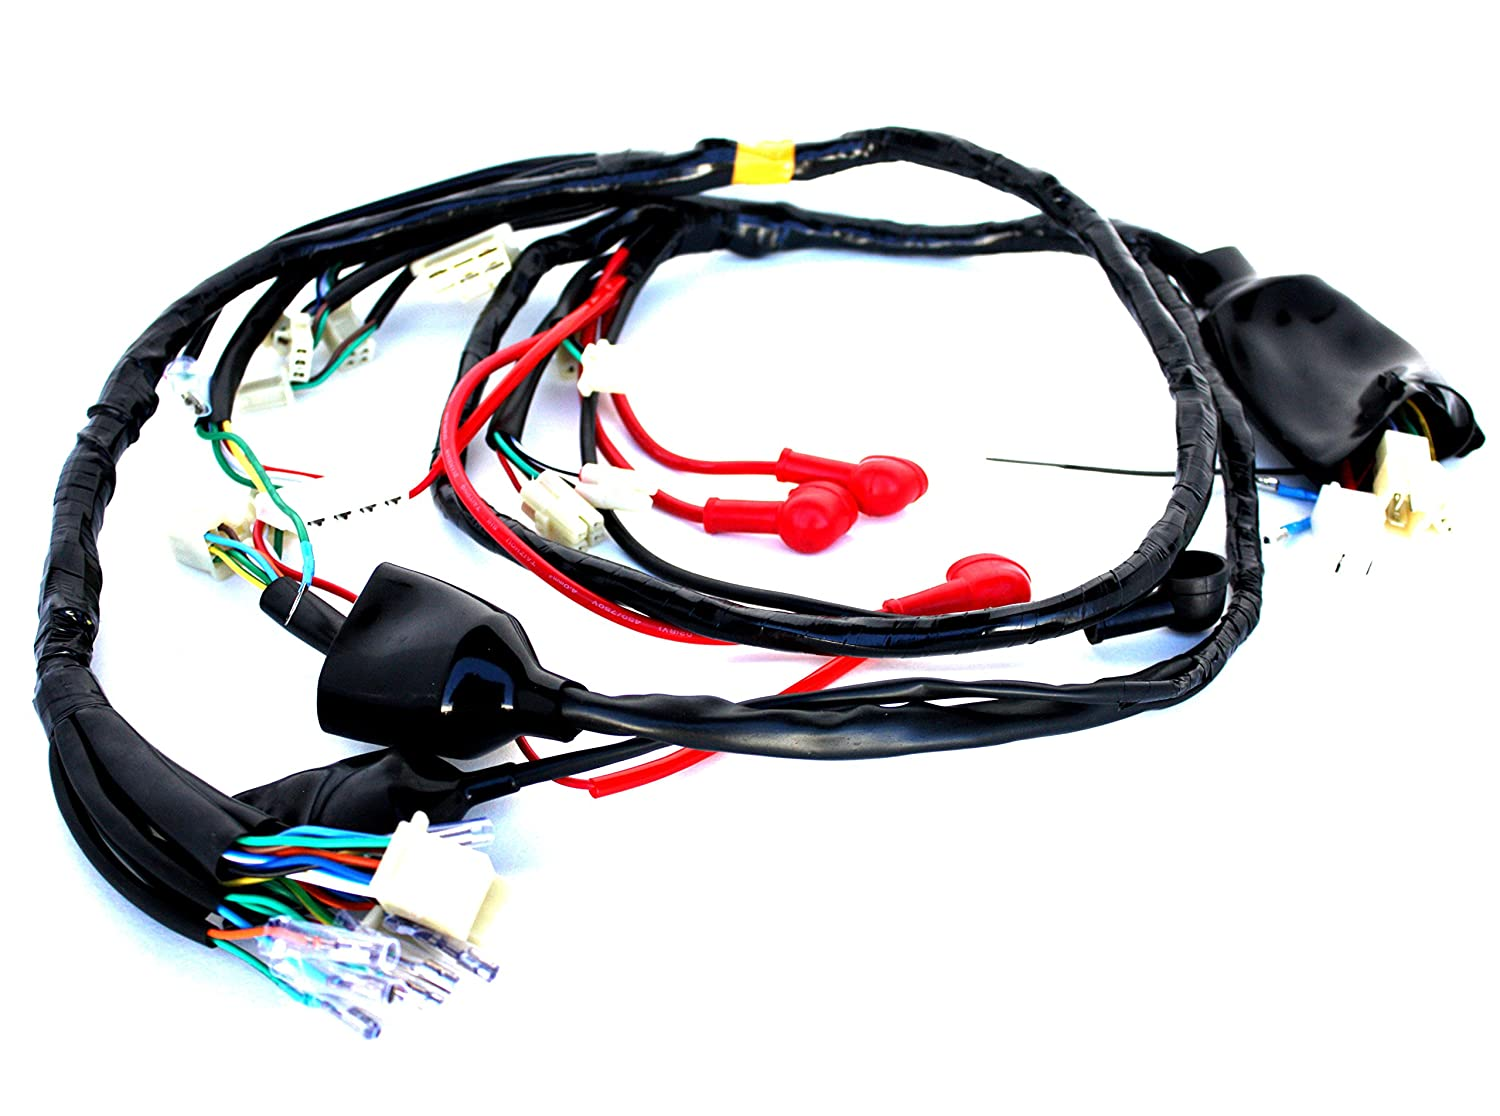 talon manco atv wiring diagram 5367c8 manco talon 250cc wiring harness wiring resources  5367c8 manco talon 250cc wiring harness